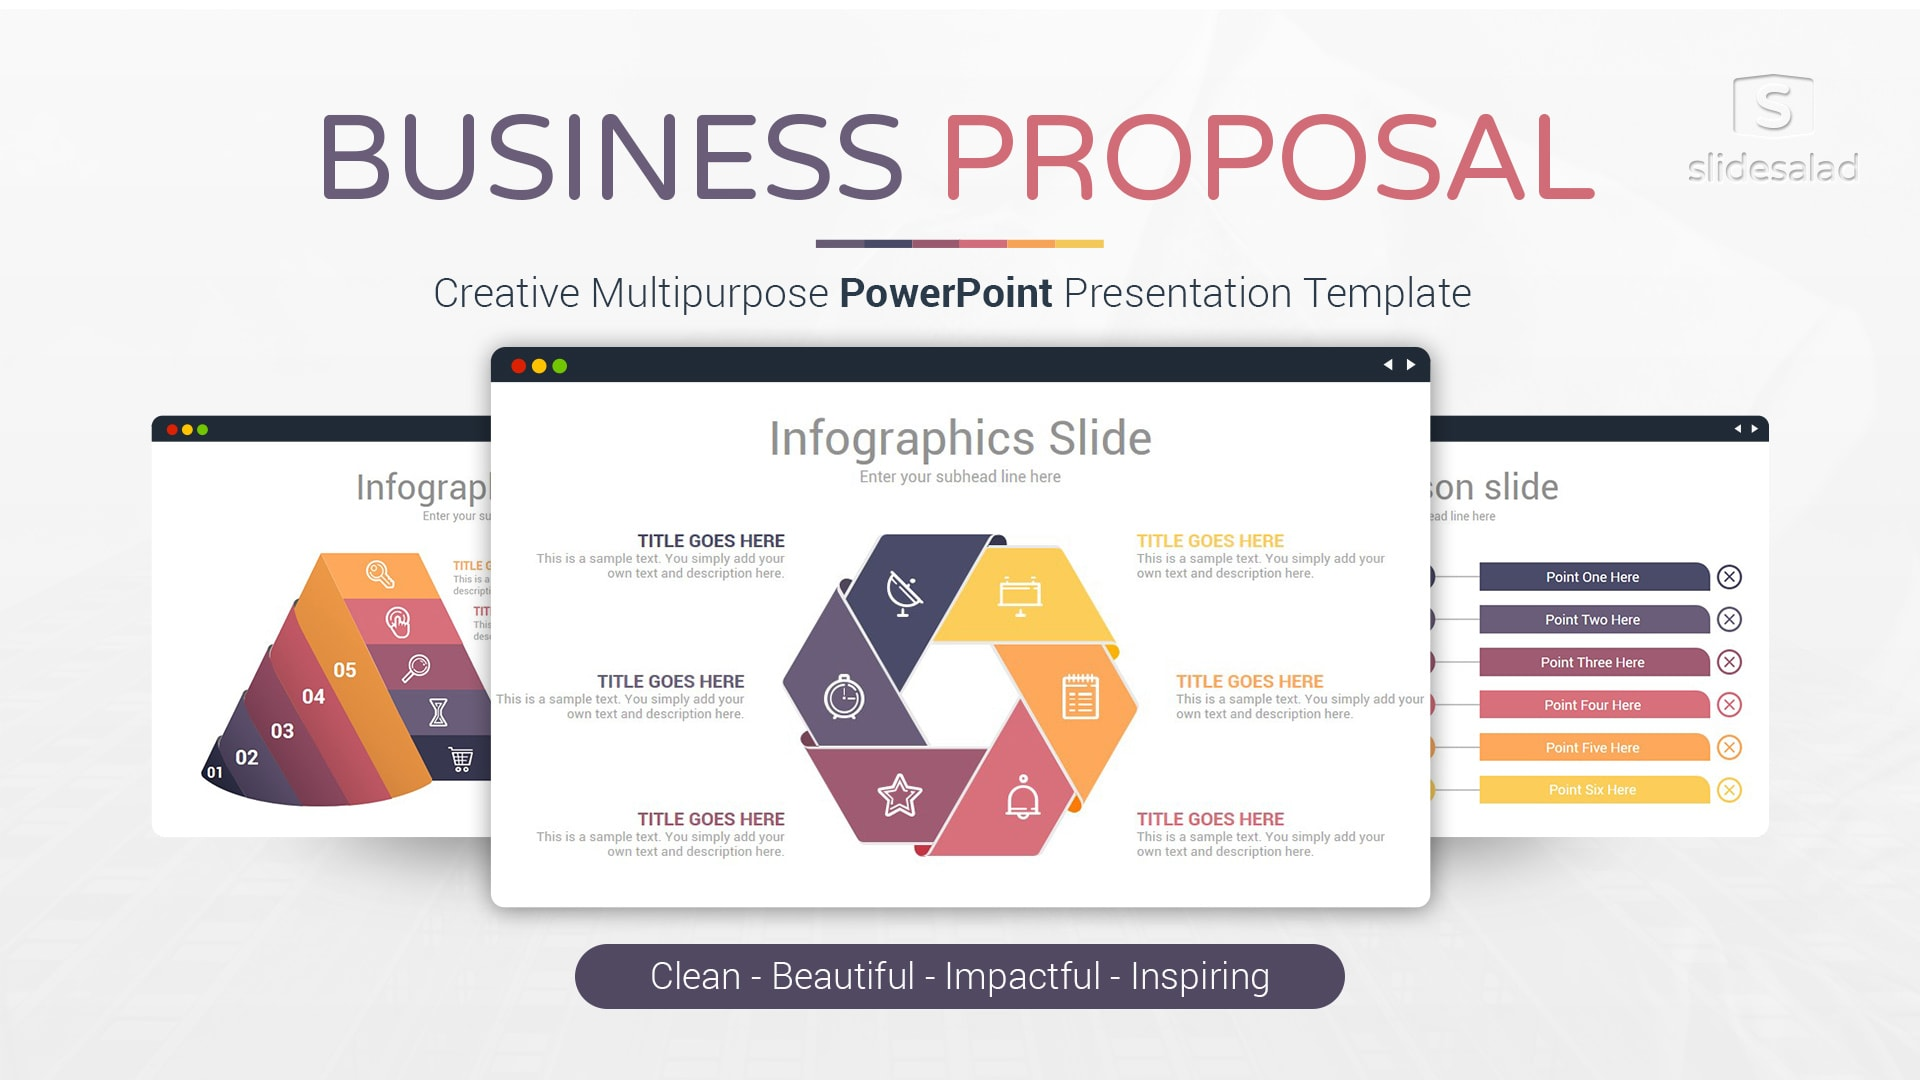 Business Proposal PowerPoint Presentation Template - Creative PowerPoint Themes With Creative Slide Designs for Awesome PPT Presentations